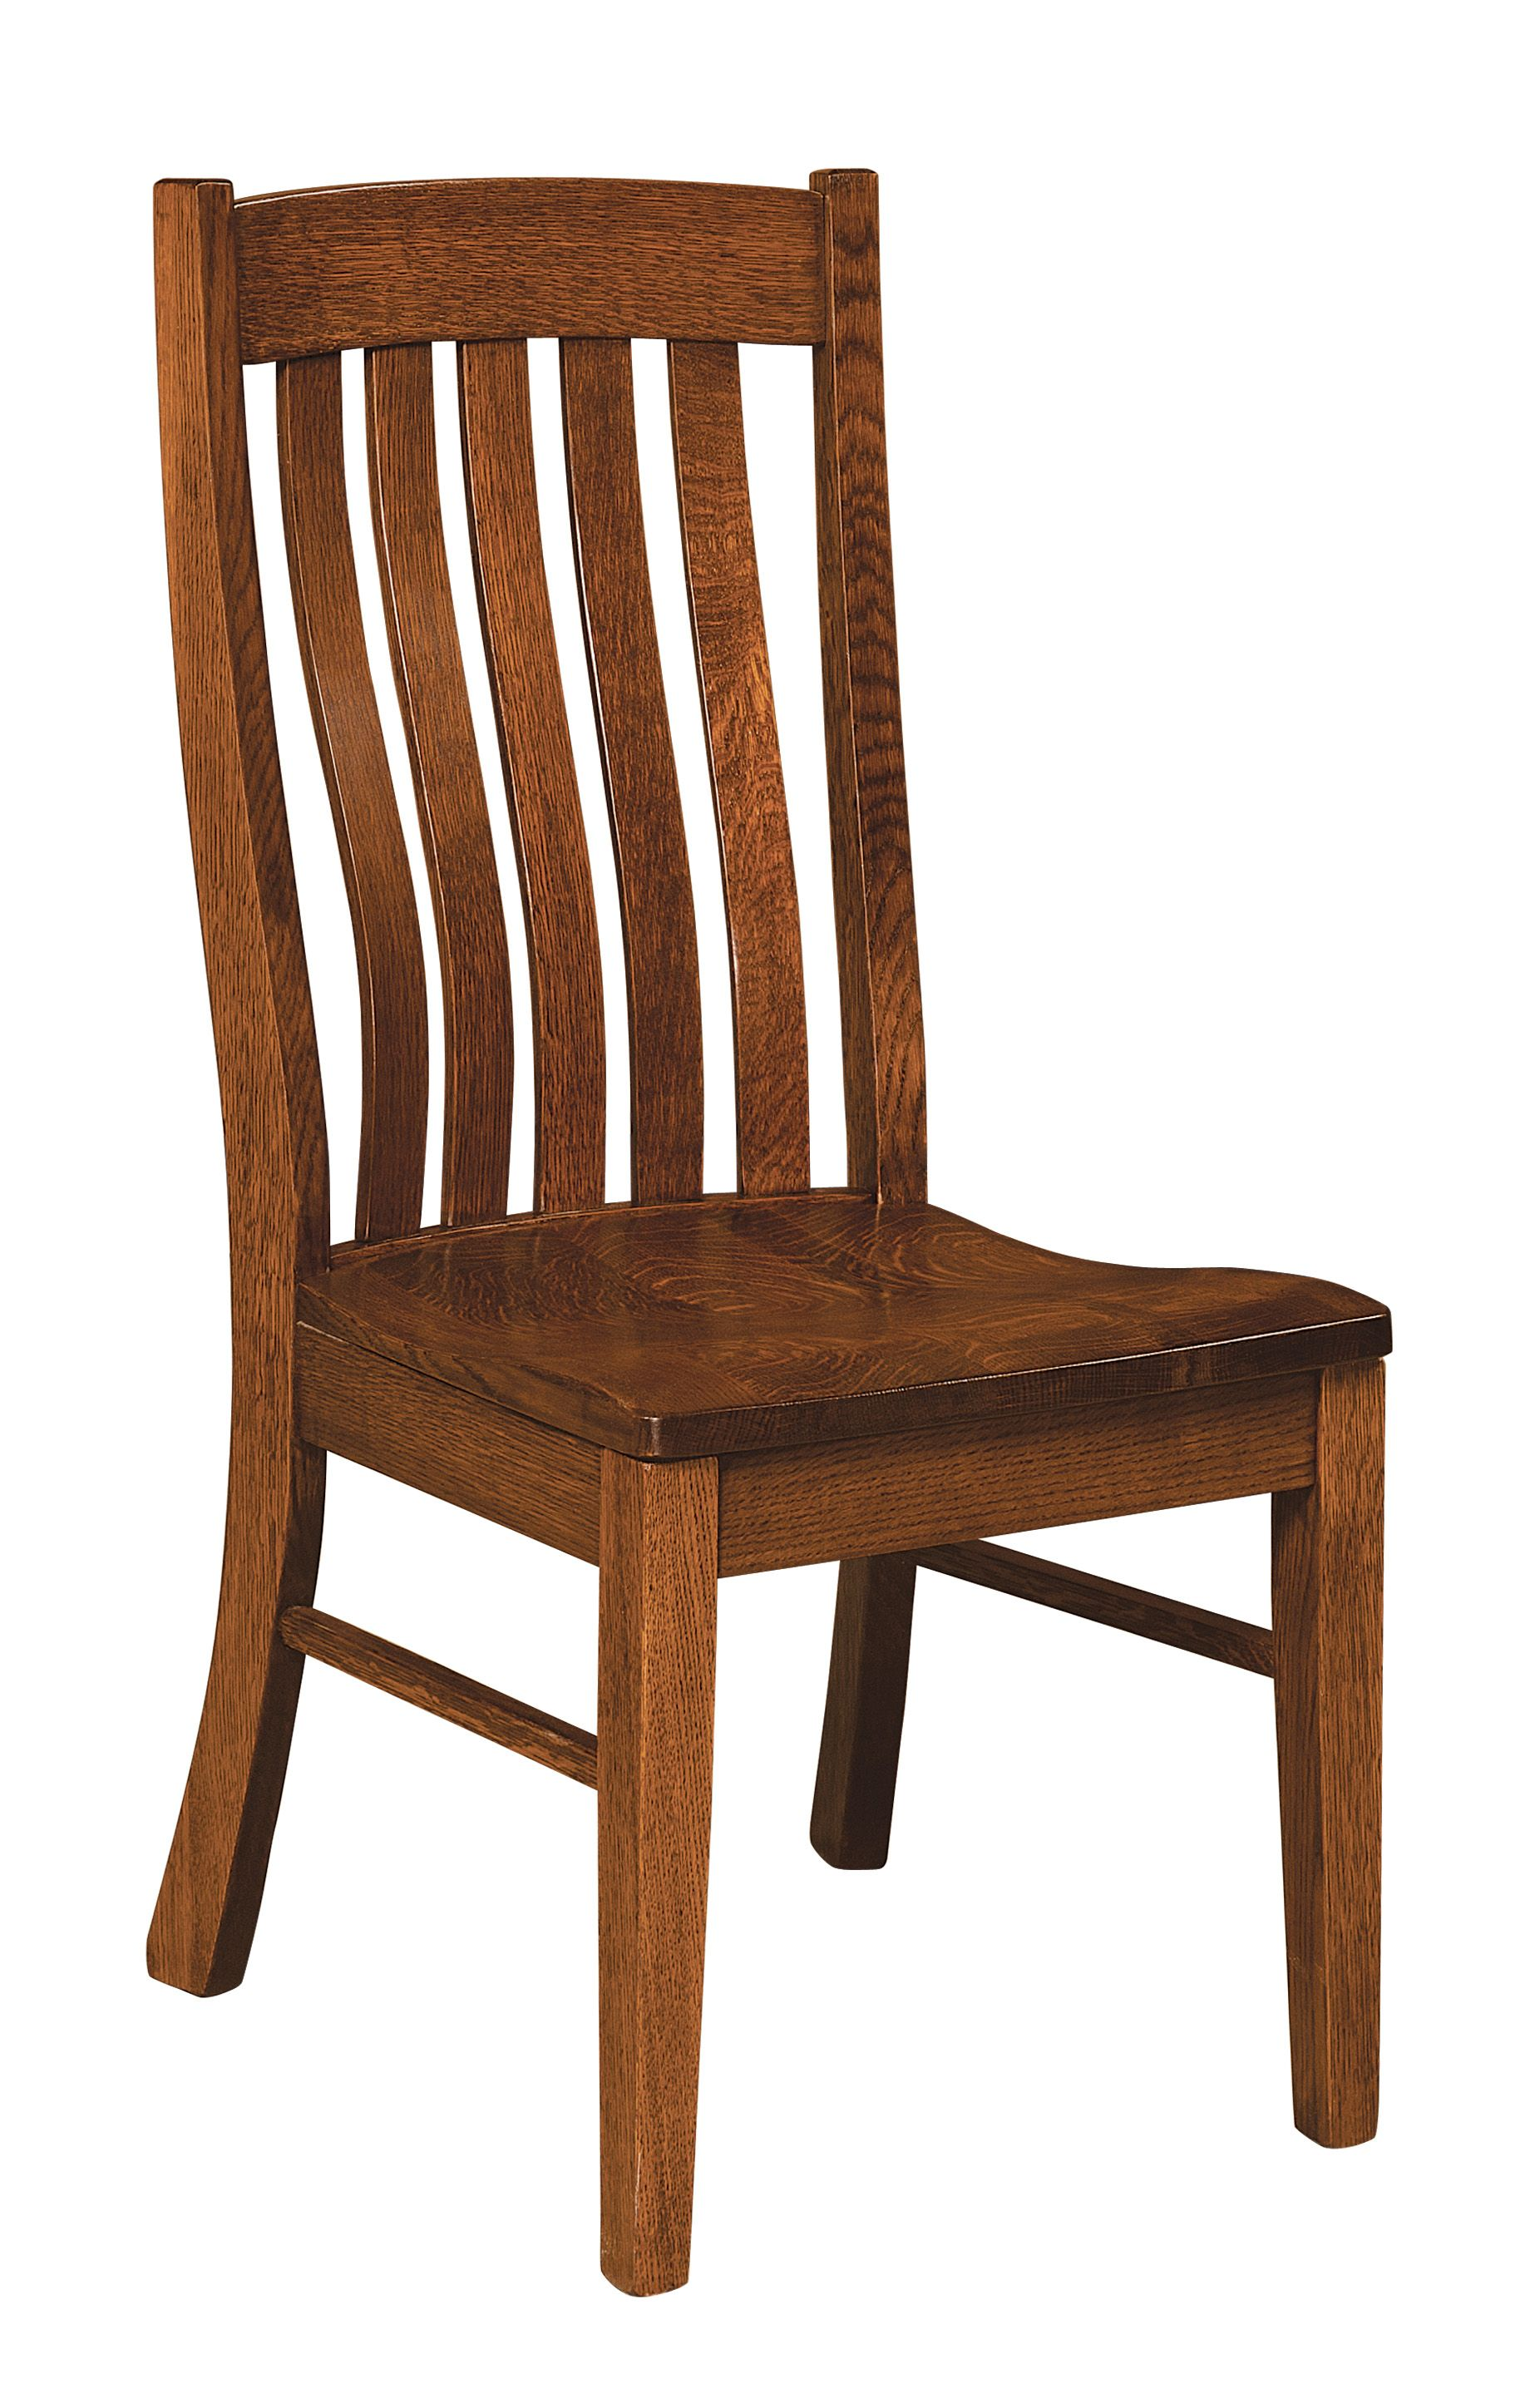 Wooden Dining Room Chairs Amish Oak In Texas With Images